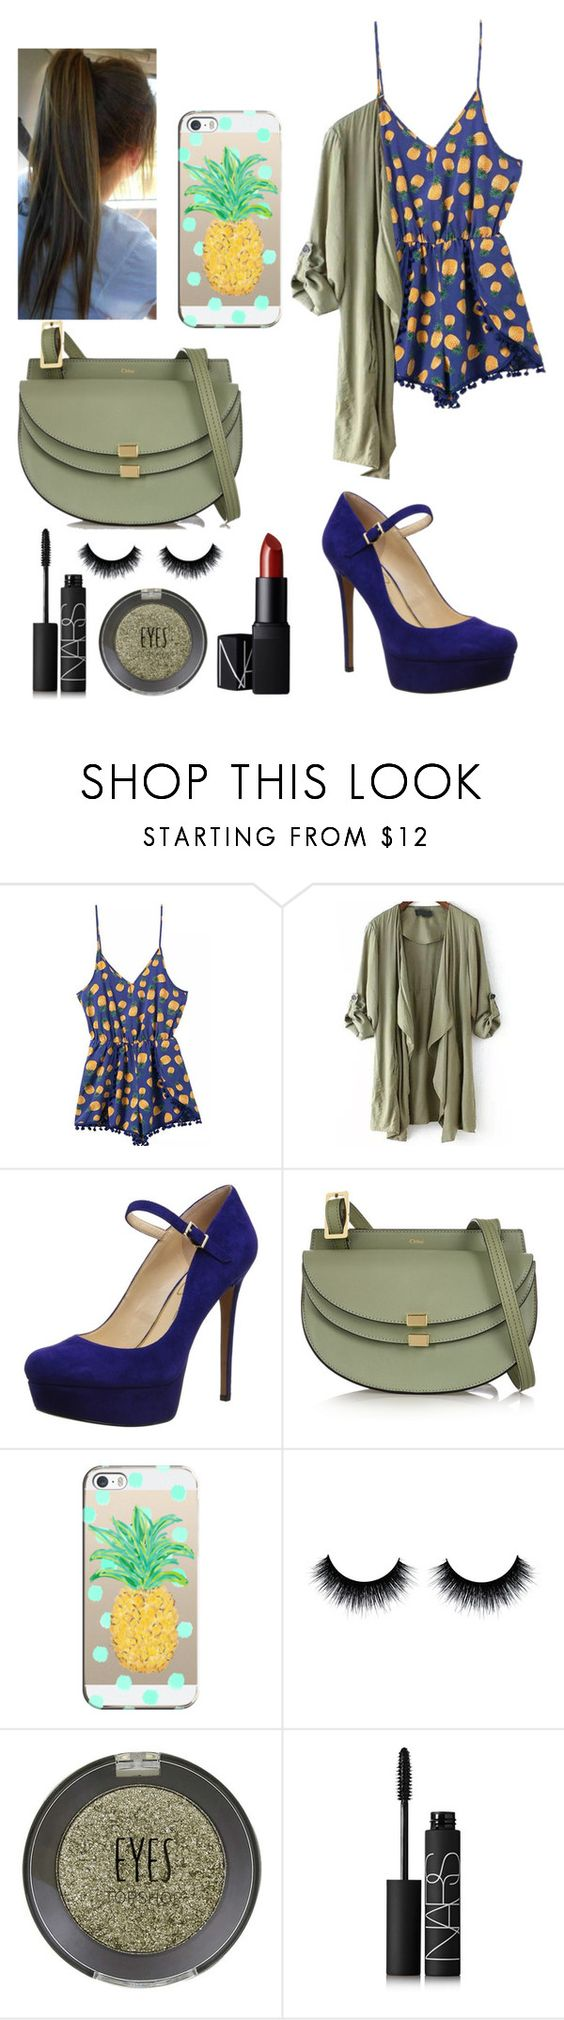 """""""Going to by shoes"""" by sindimaloku ❤ liked on Polyvore featuring Jessica Simpson, Chloé, Casetify, Topshop and NARS Cosmetics"""